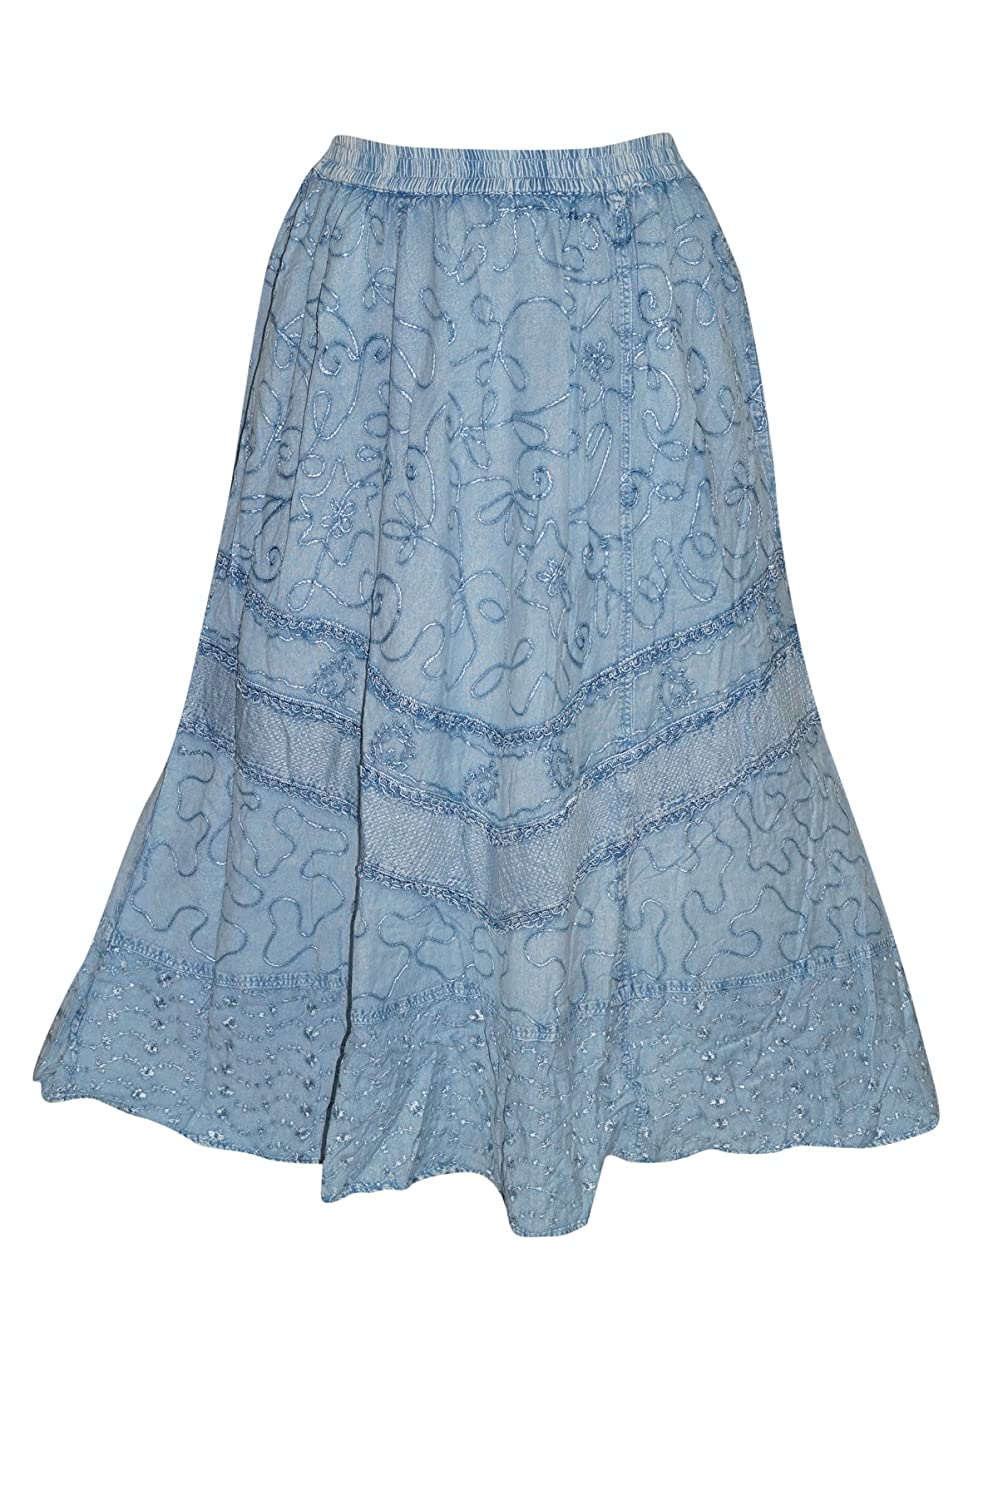 Mogul Interior Gypsy Long Skirt Blue Embroidered Bohemian For Women S/M